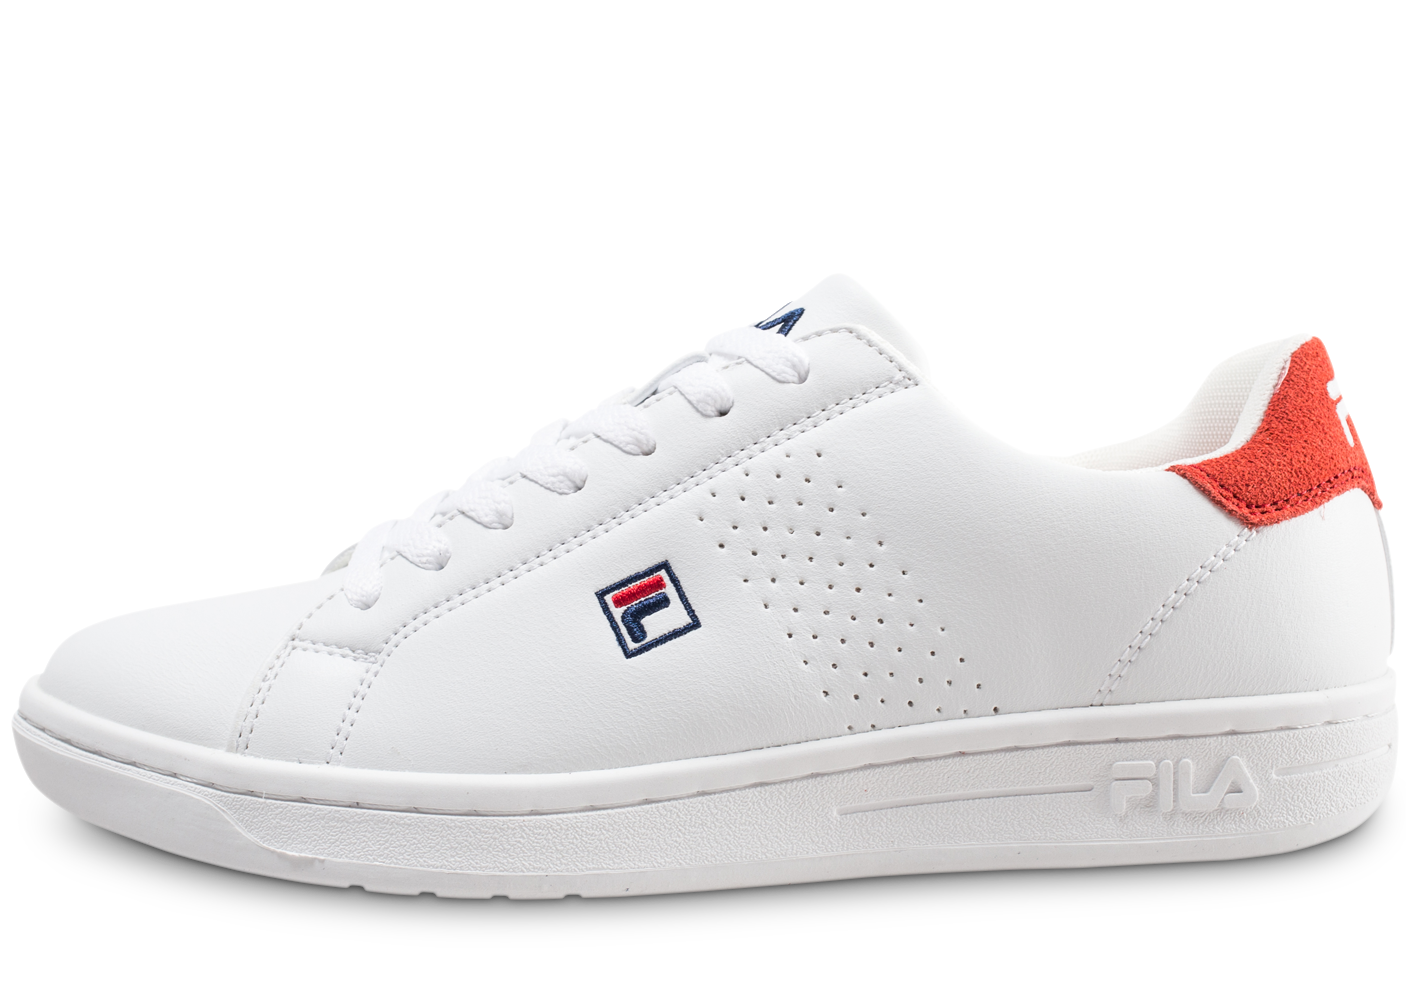 Fila Homme Crosscourt 2 Low Blanche Et Rouge Baskets